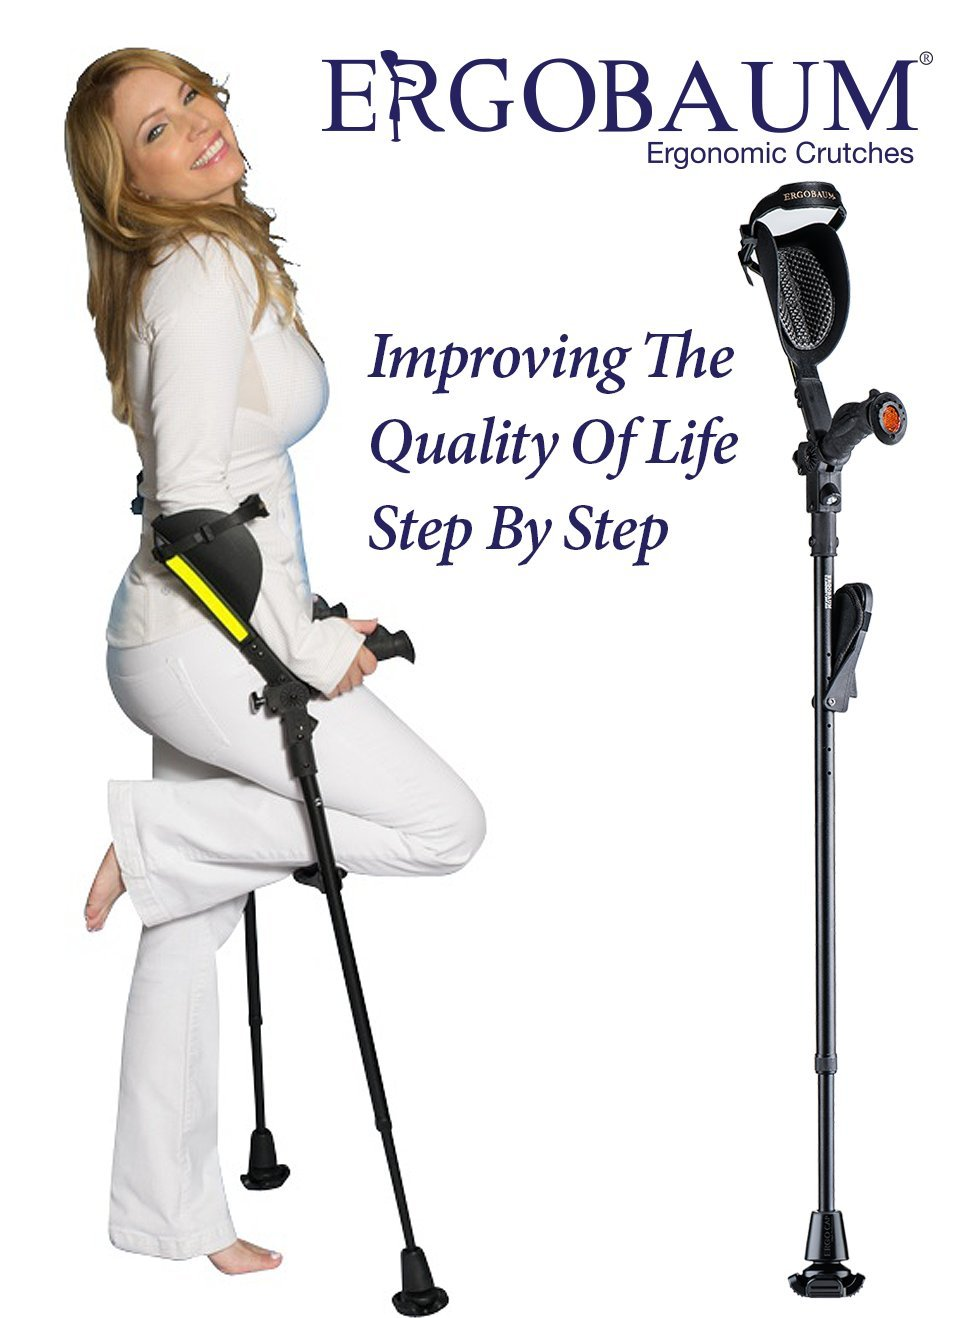 Crutches- Latest Generation Ergobaum By Ergoactives. 1 Pair of the ''Pain Reduction'' Crutches